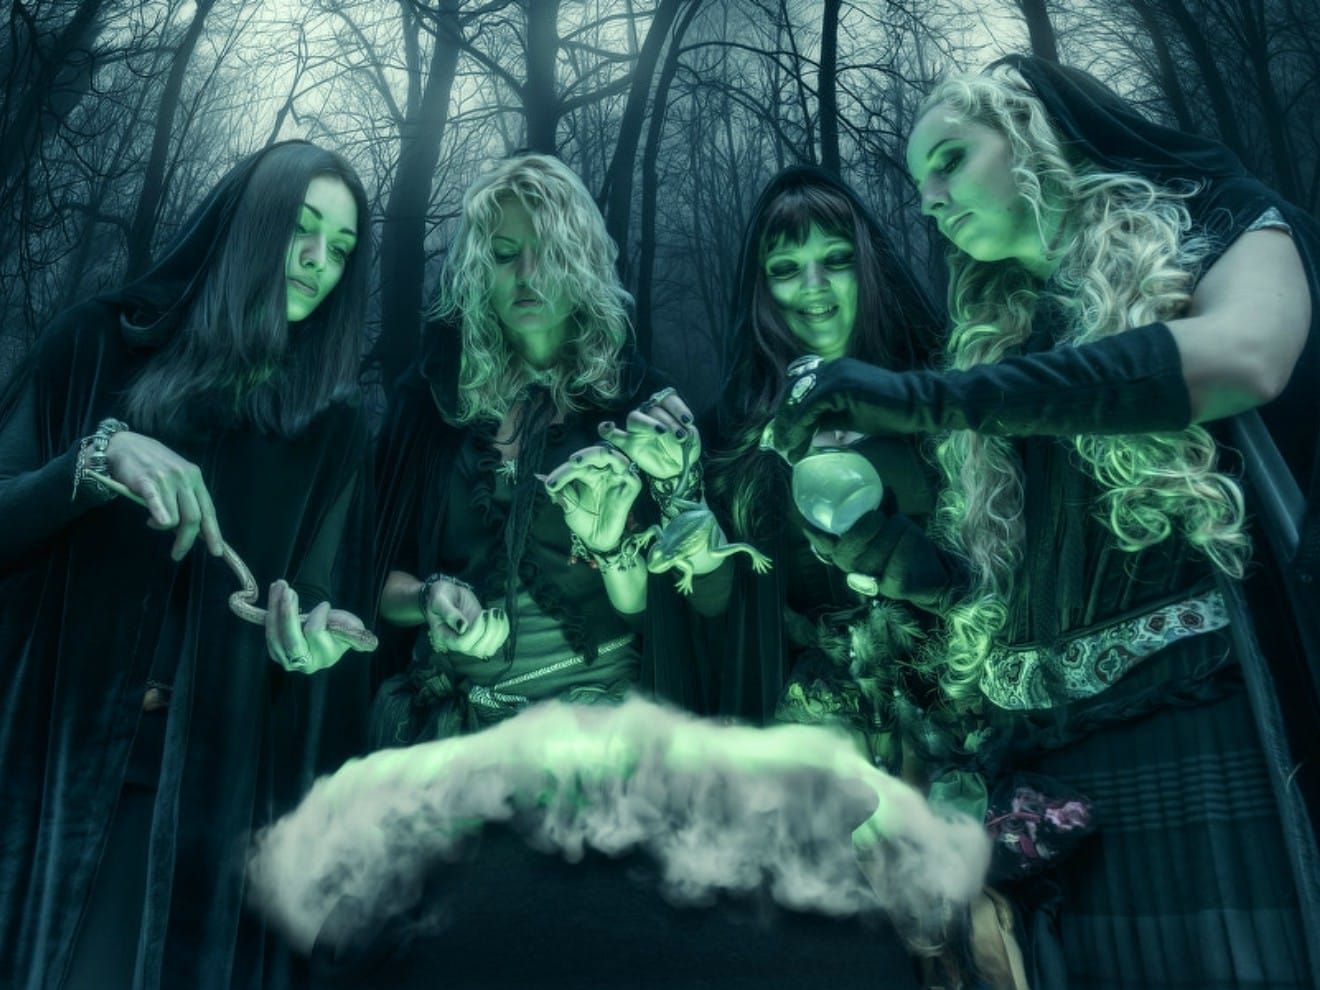 An Ethnographic Inquiry of a Coven of Contemporary Witches